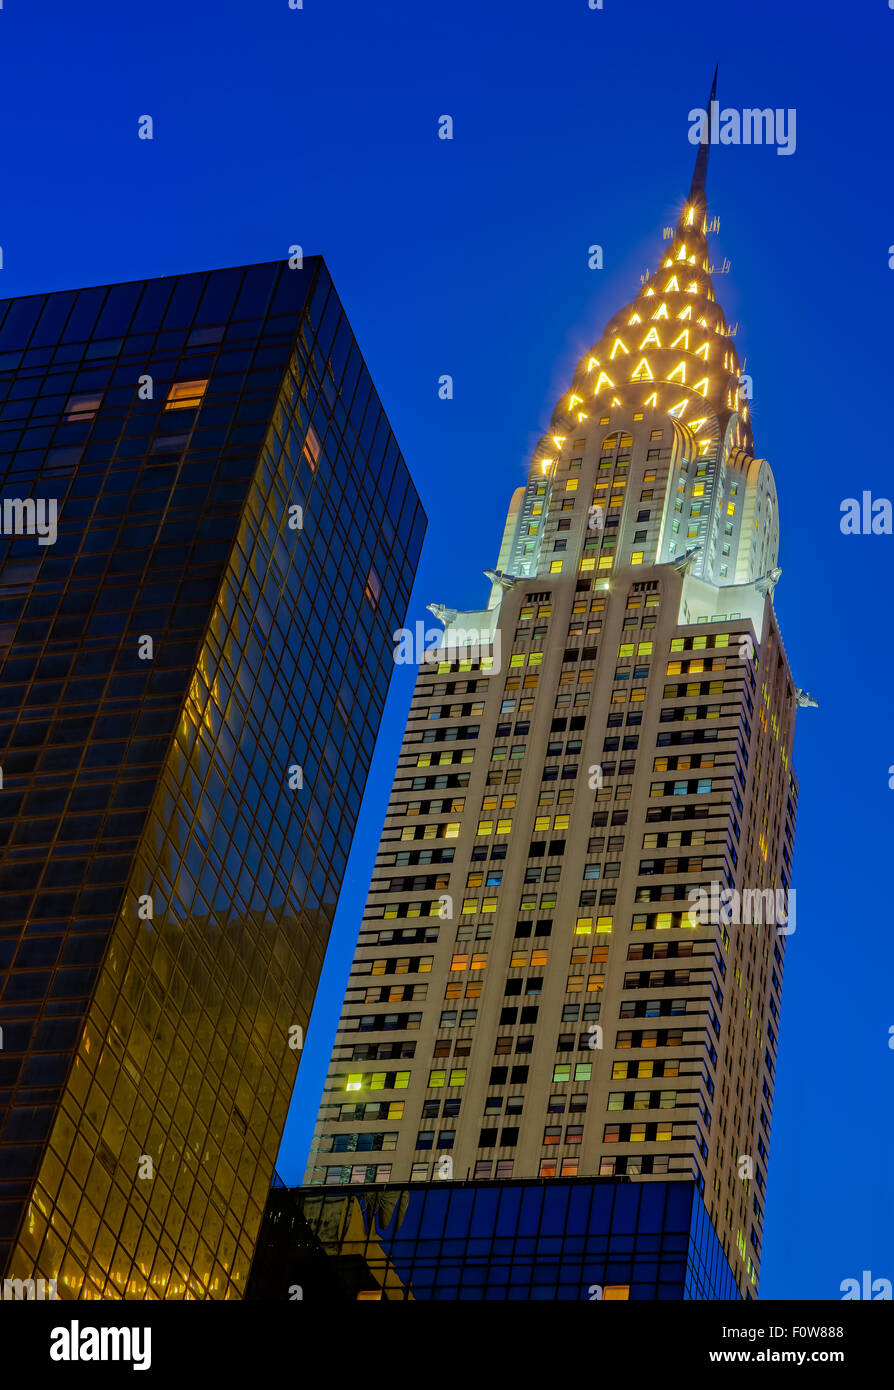 Chrysler Building located in the East side of midtown Manhattan in New York City during the blue hour before sunrise. - Stock Image